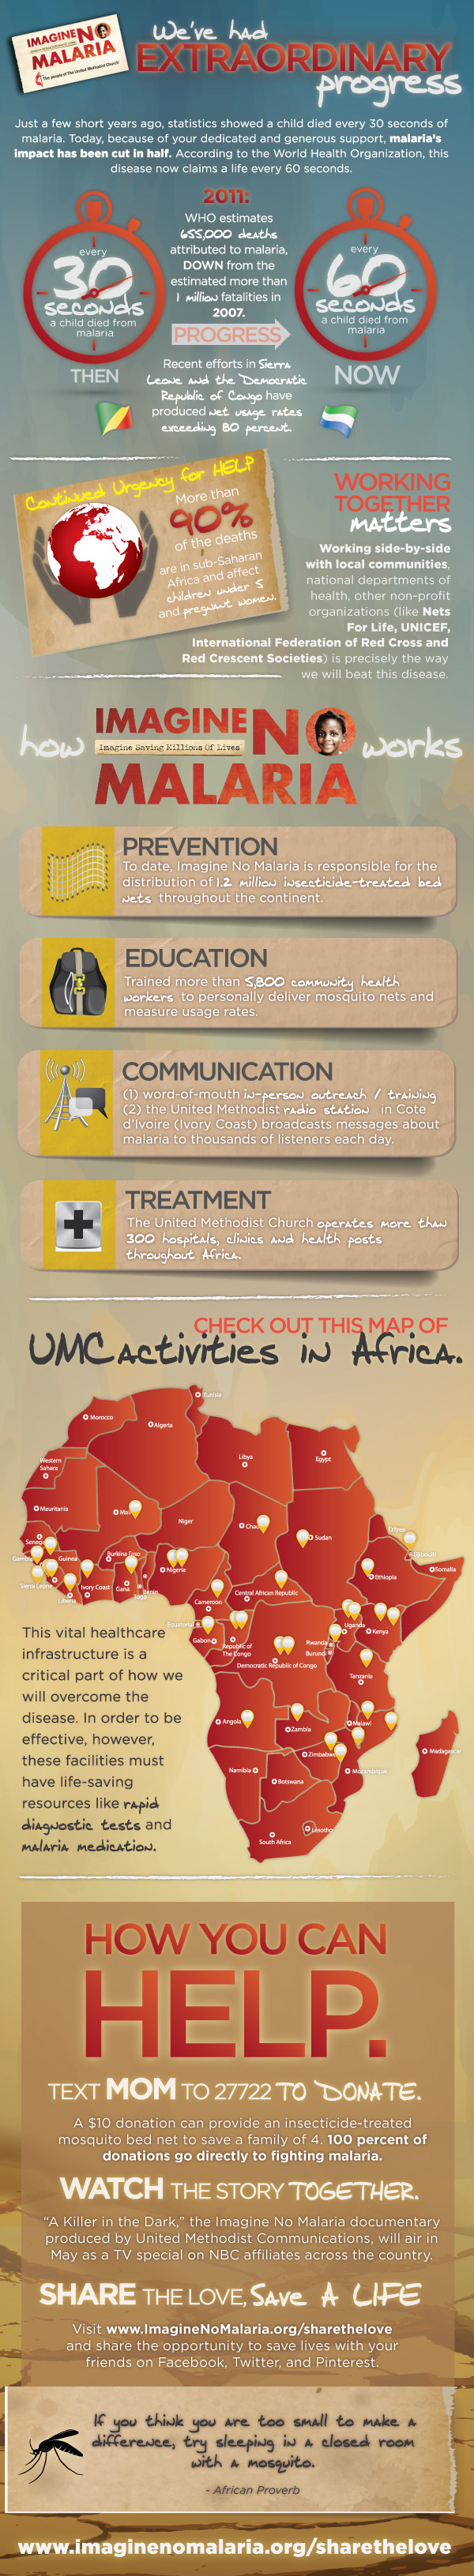 the-battle-to-end-malaria-deaths-in-africa-by-2015_51833fb4ec179